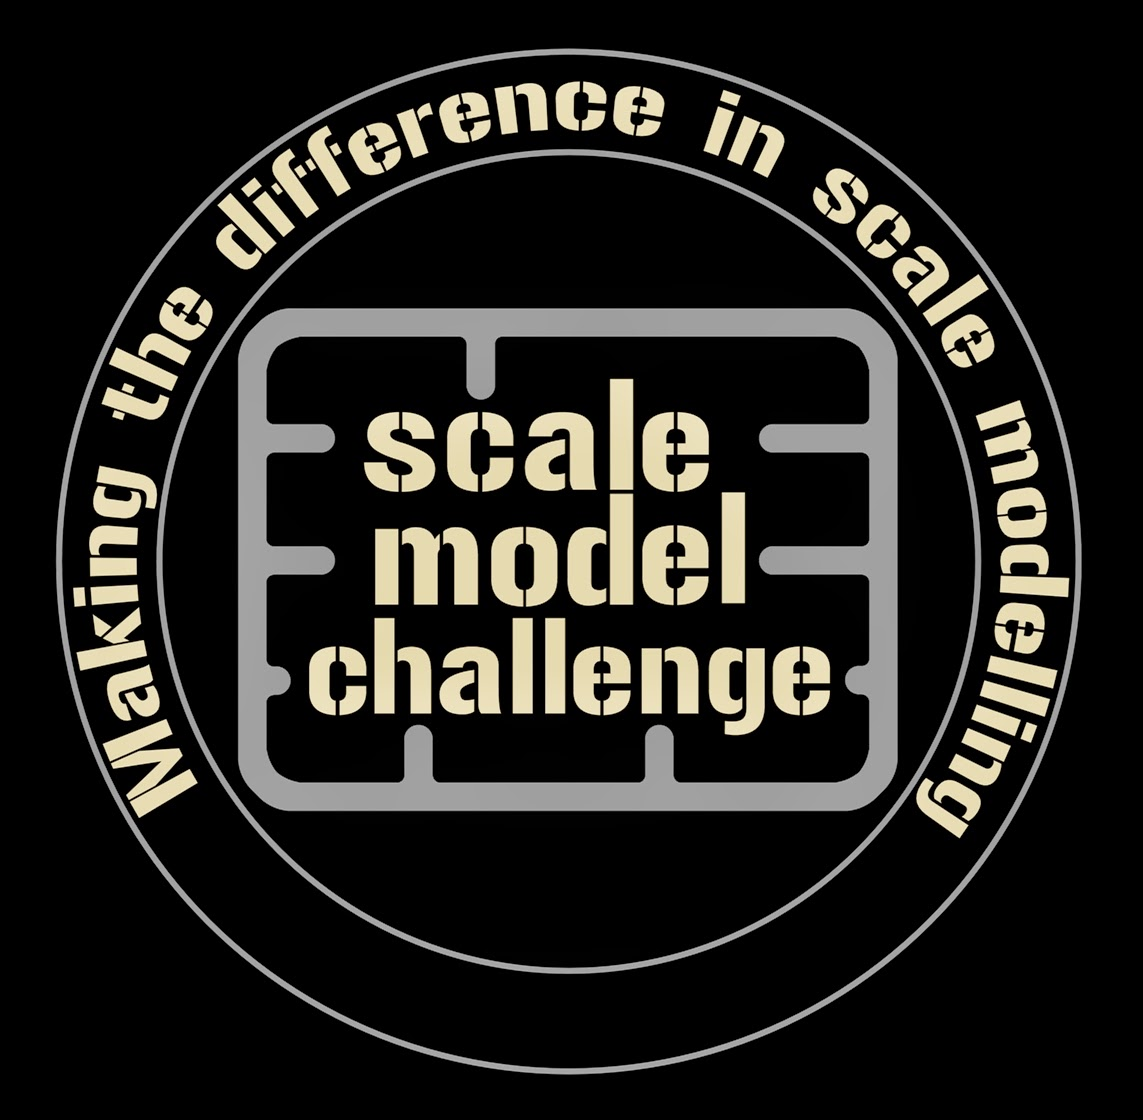 Supporting the Scale Model Challenge